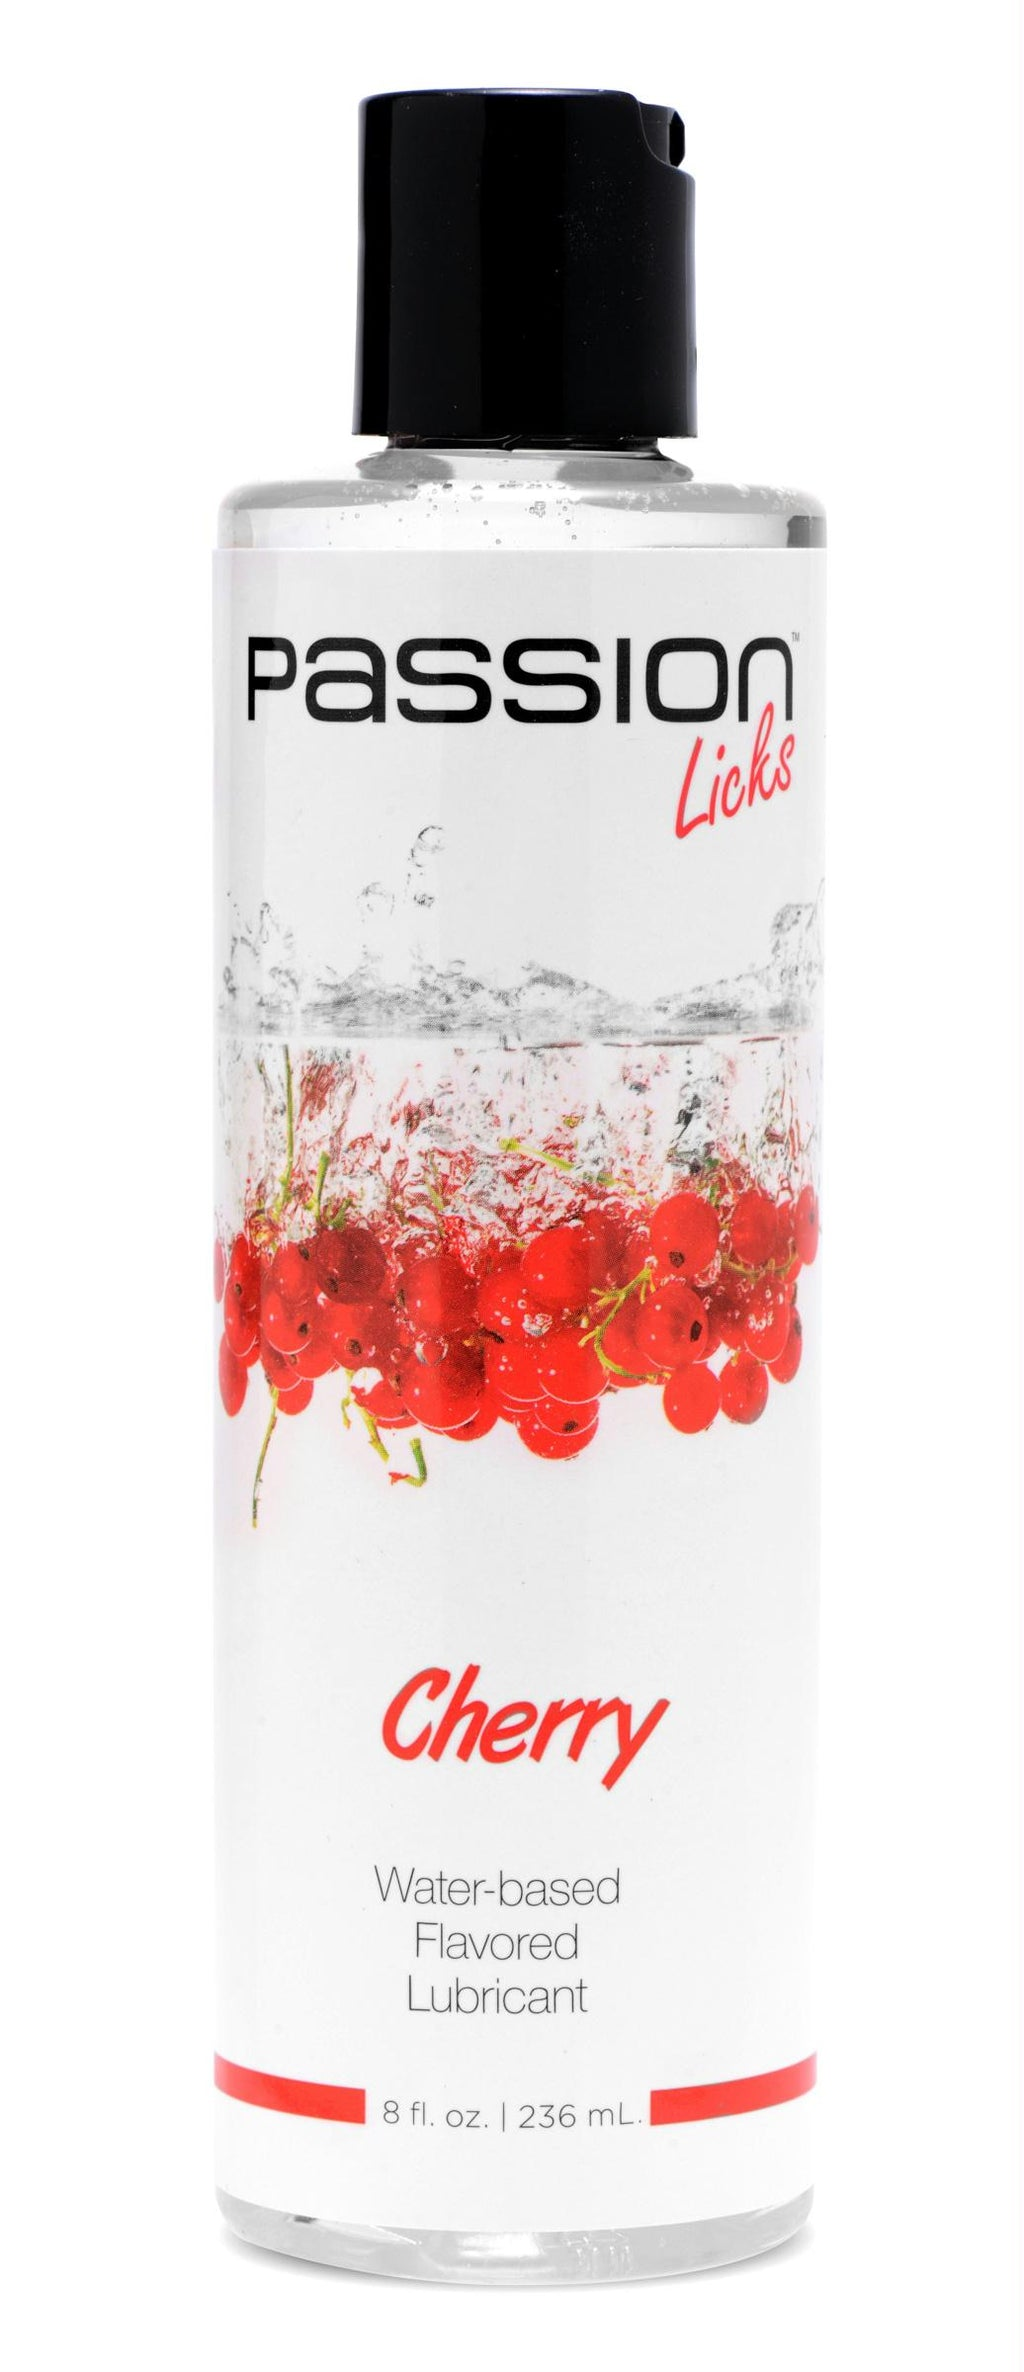 Passion Licks